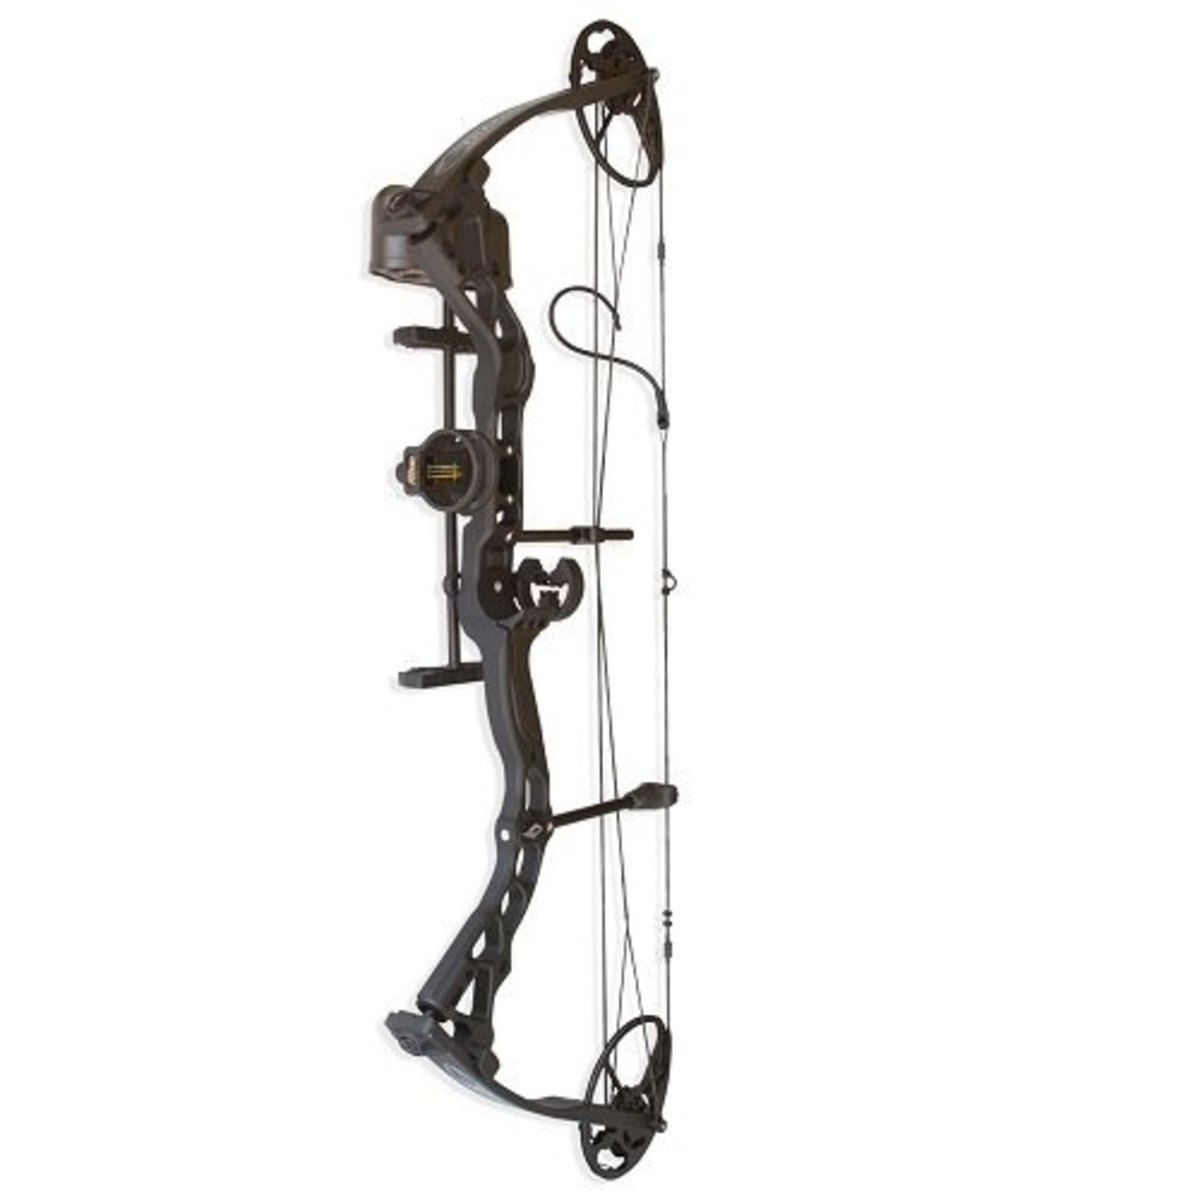 Compound bow with easy adjustment from Diamond.